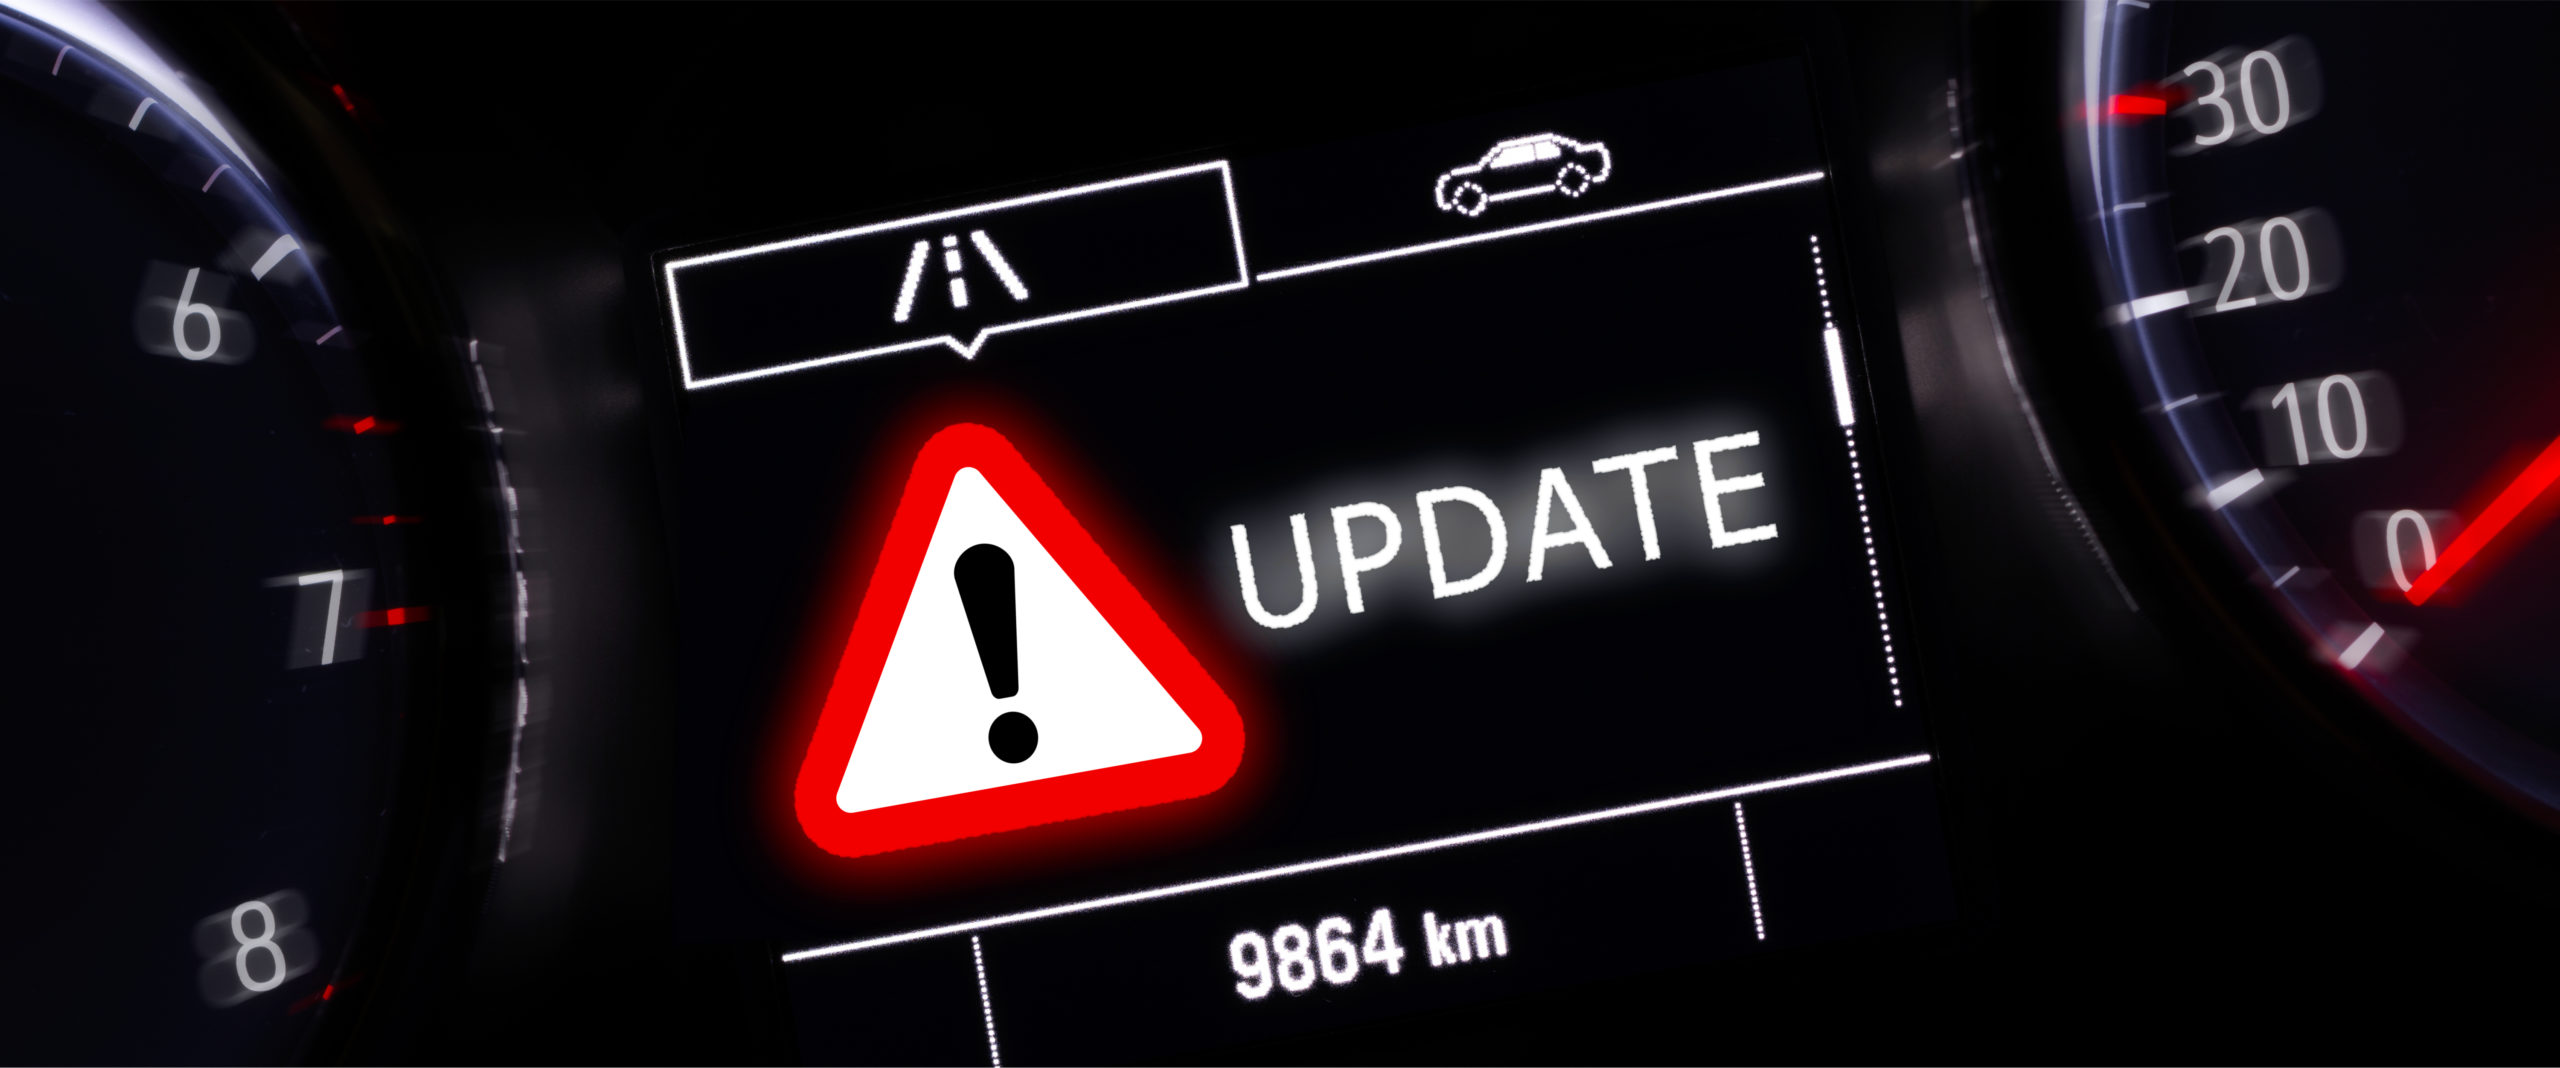 Over the air updates: update warning light on dashboard